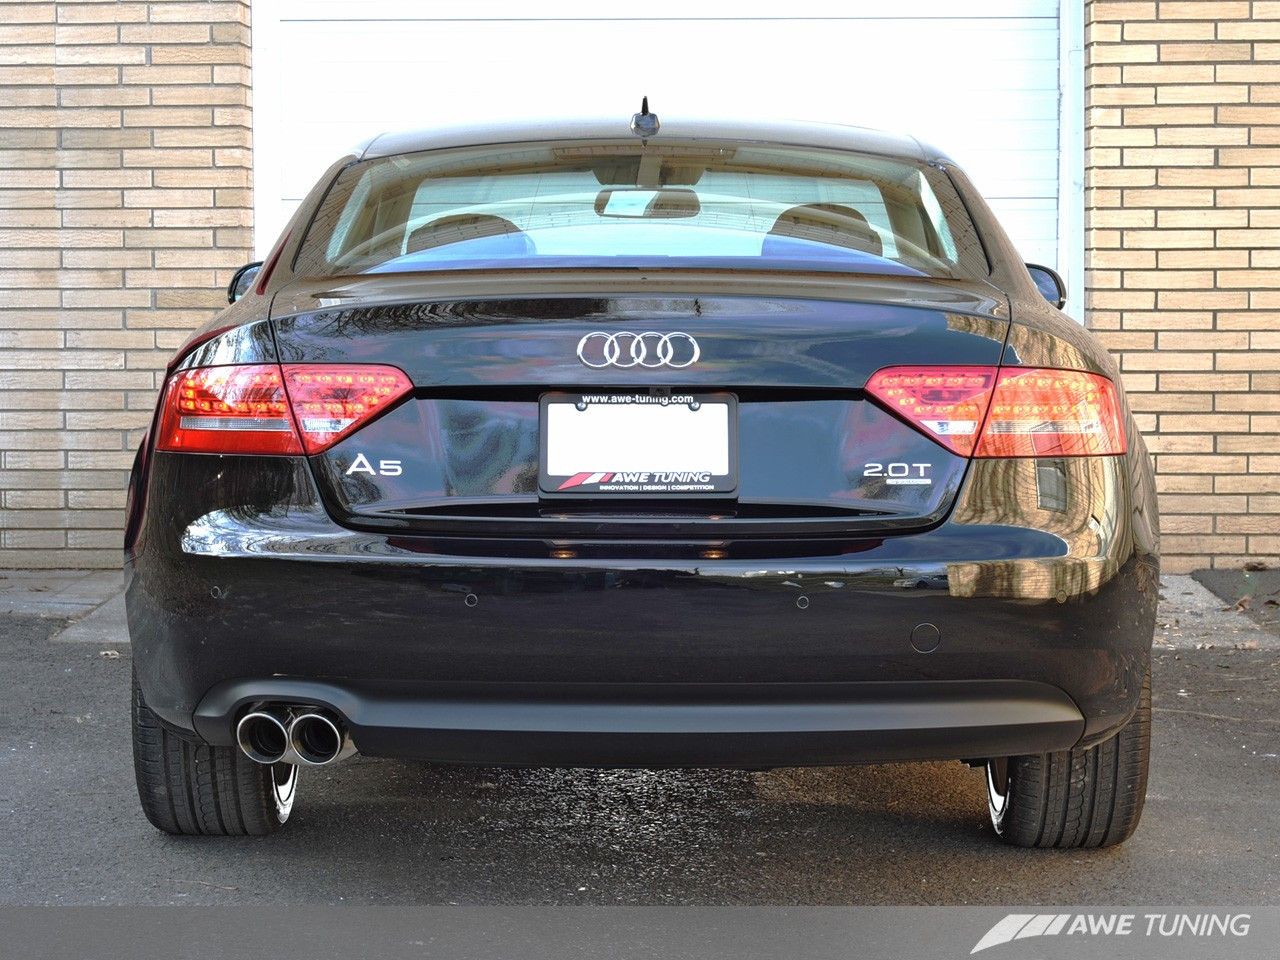 Audi A5 2 0 T >> Awe Tuning A5 2 0t Touring Edition Single Outlet Exhaust For Audi A5